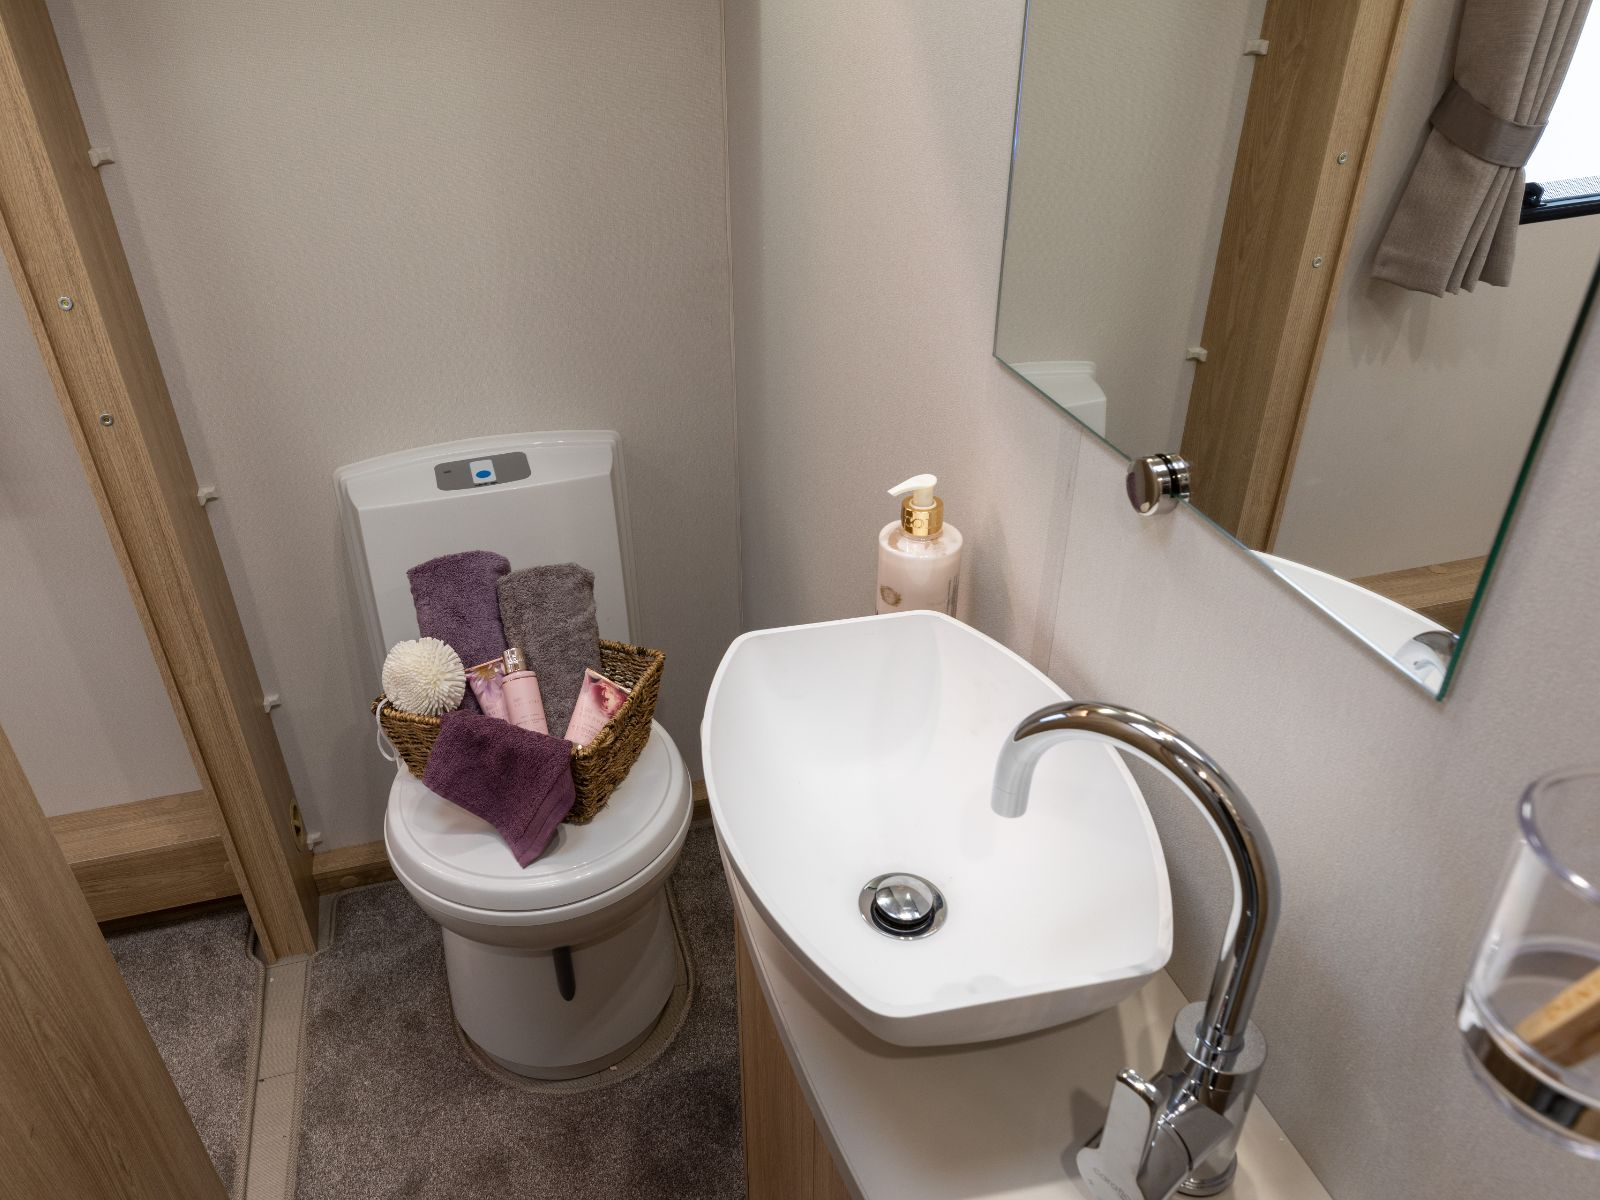 Bathroom layout with sink and toilet with assortment of toiletries'